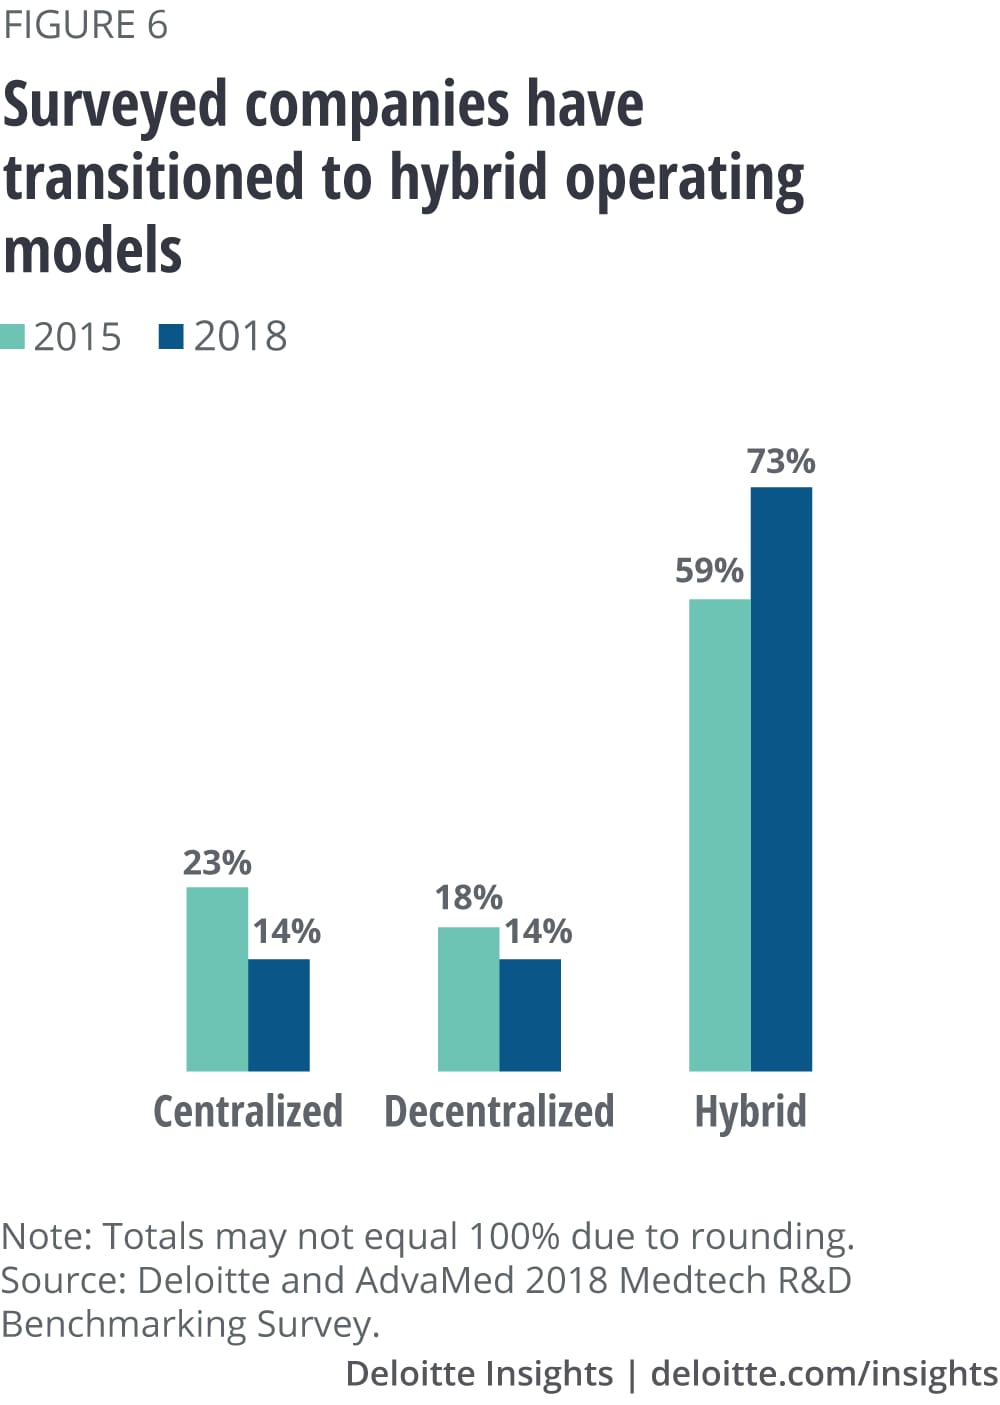 The companies surveyed have transitioned to hybrid operating models